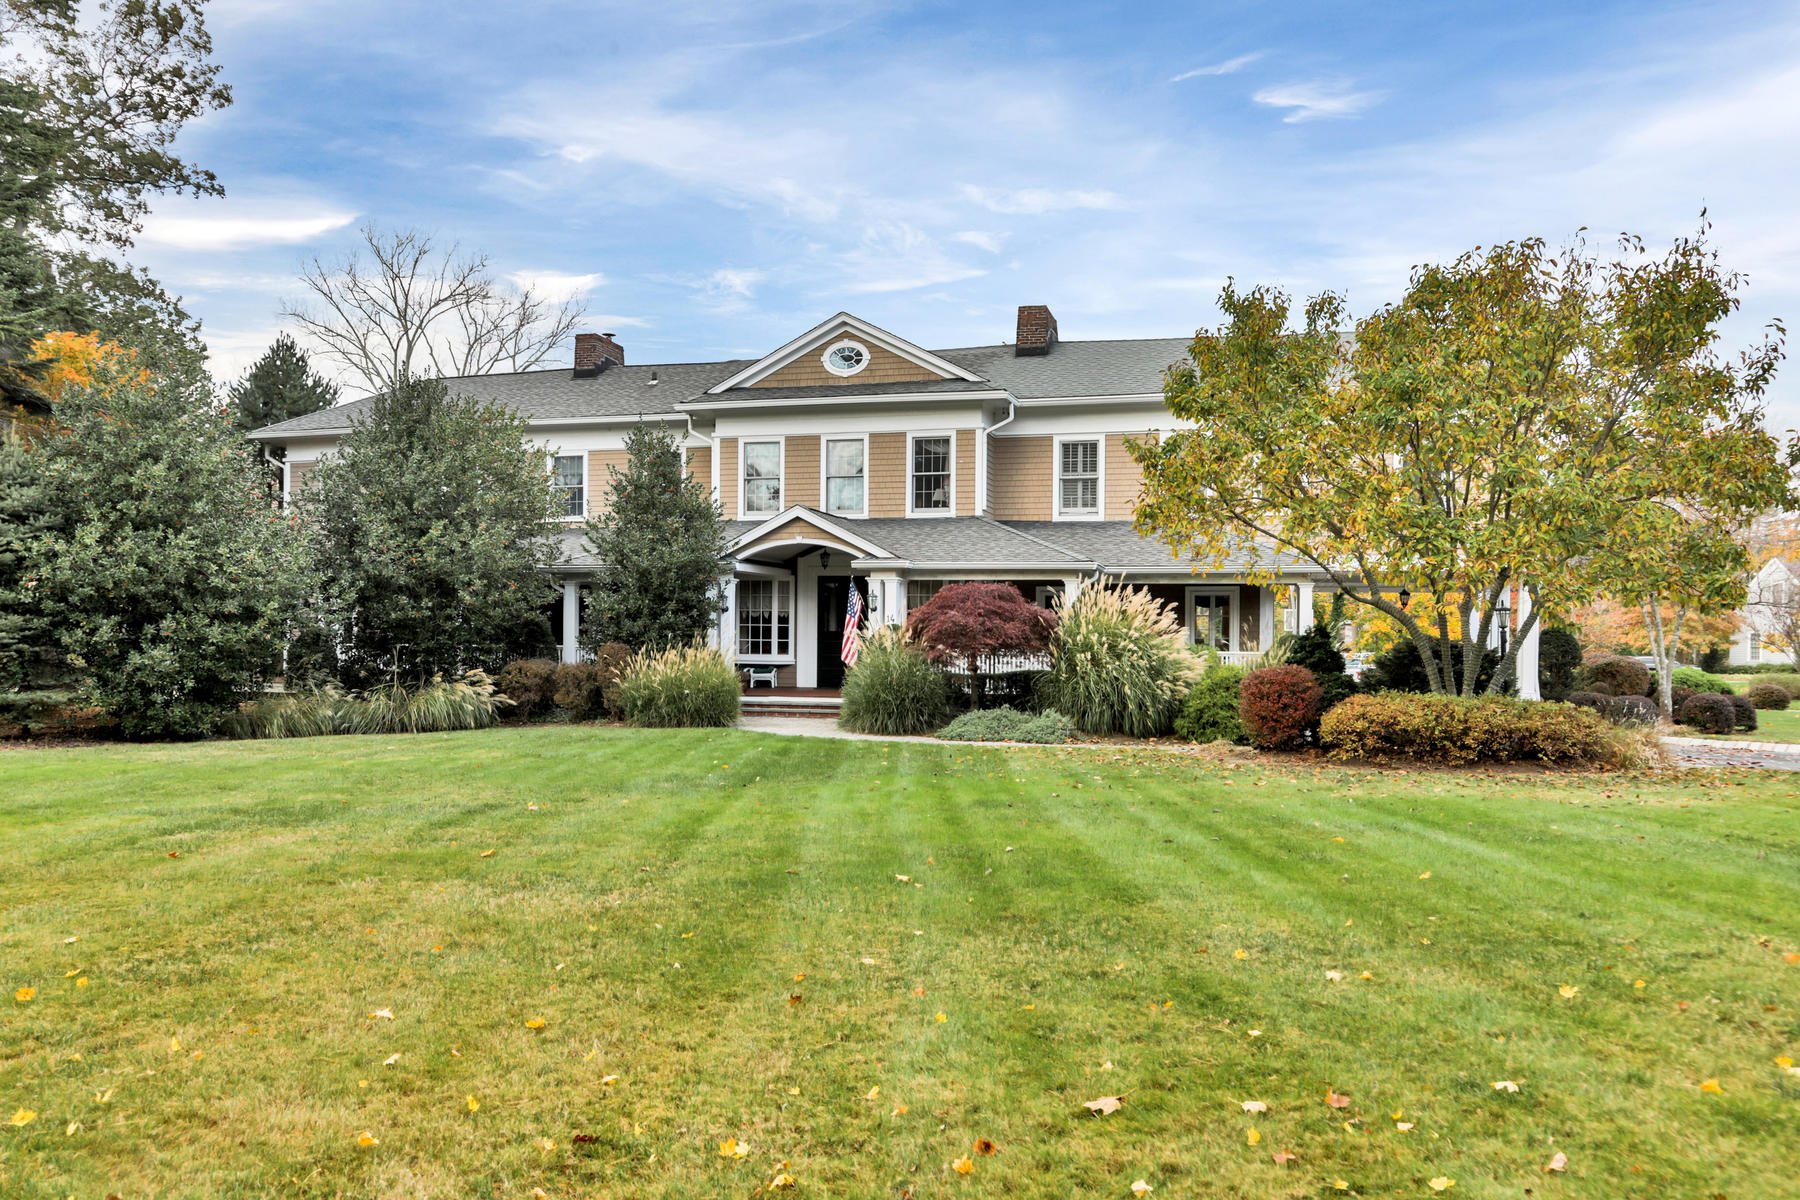 Additional photo for property listing at A Rare Gem In The Heart of Rumson 14 Hartshorne Lane Rumson, New Jersey 07760 United States